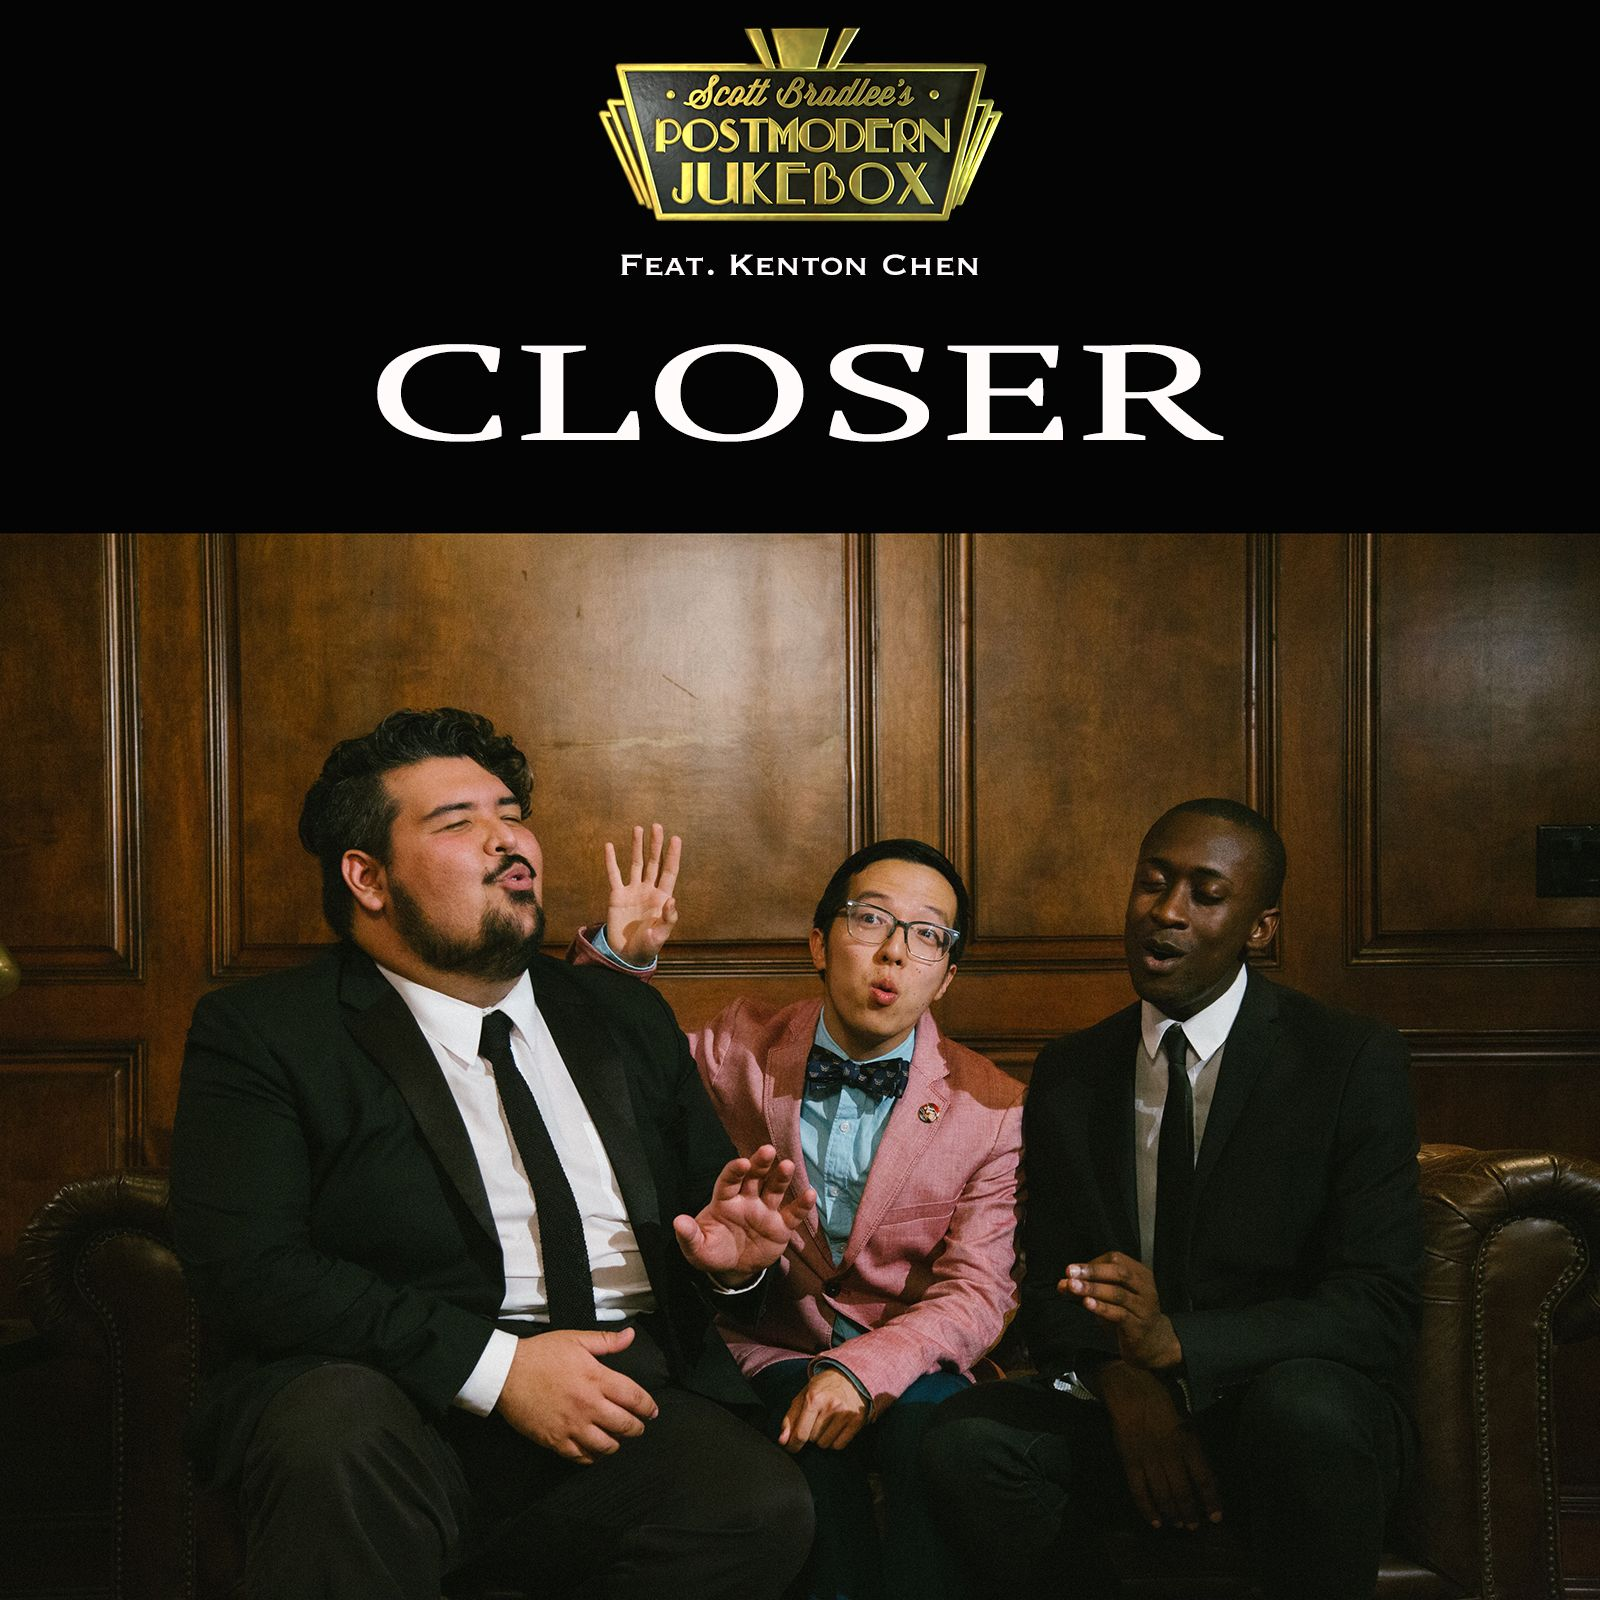 Kenton Chen S Amazing Pmj Debut With Closer Check It Out Http Postmodernjukebox Com Post 50s Prom Style Version Chainsmokers Closer 2017 Playlist Closer